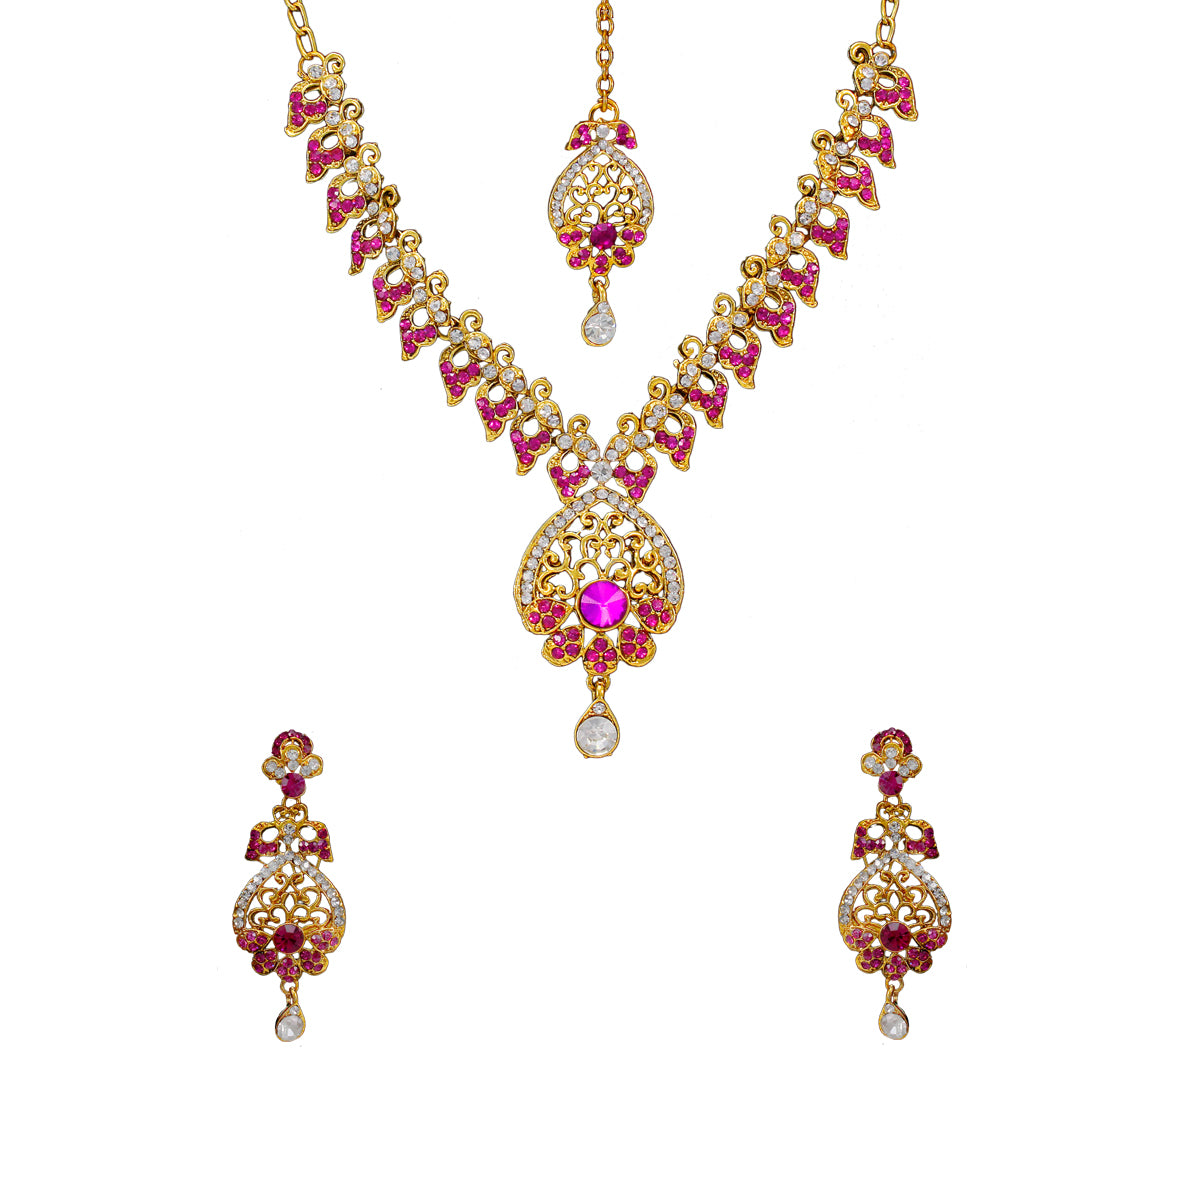 Royal Gold Plated Designer Kundan Stone Pink Petal Design Necklace and  Earrings with White Crystal Stones